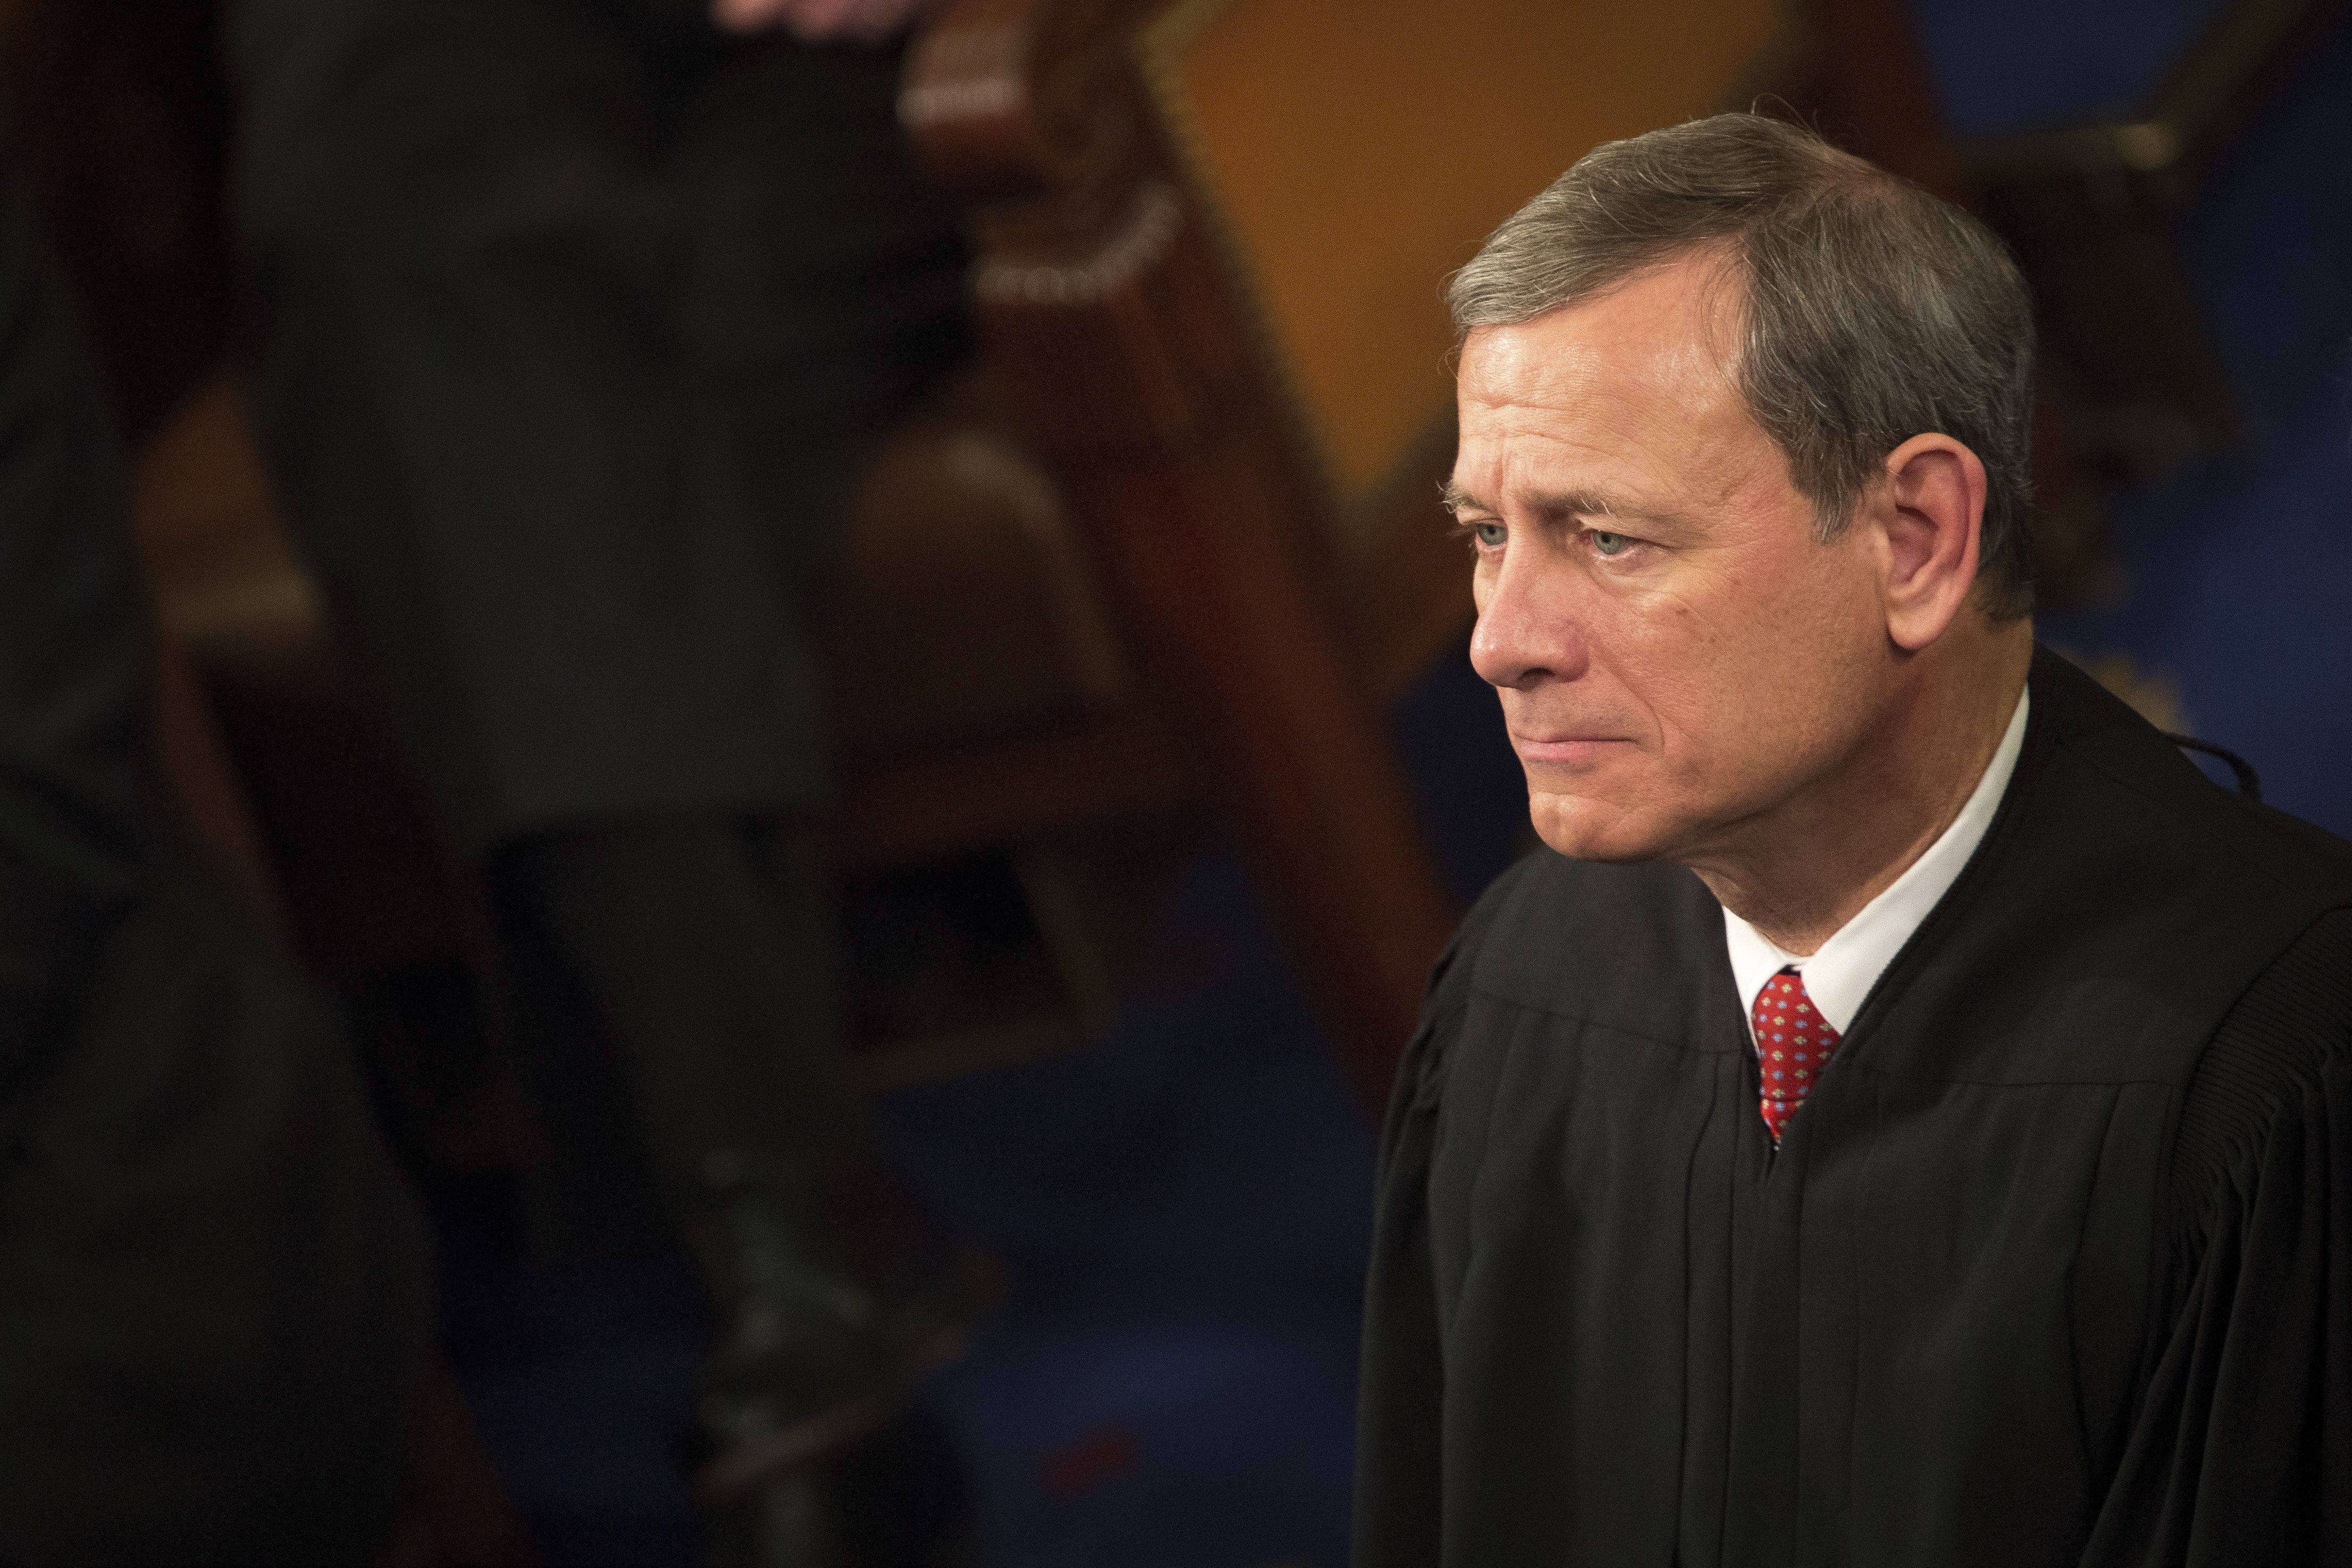 Chief Supreme Court Justice John Roberts listens as U.S. President Barack Obama delivers the State of the Union address to a joint session of Congress at the Capitol in Washington, D.C., U.S., on Tuesday, Jan. 12, 2016. Obama said he regrets that political divisiveness in the U.S. grew during his seven years in the White House and he plans to use his final State of the Union address Tuesday night to call for the nation to unite. Photographer: Drew Angerer/Bloomberg via Getty Images